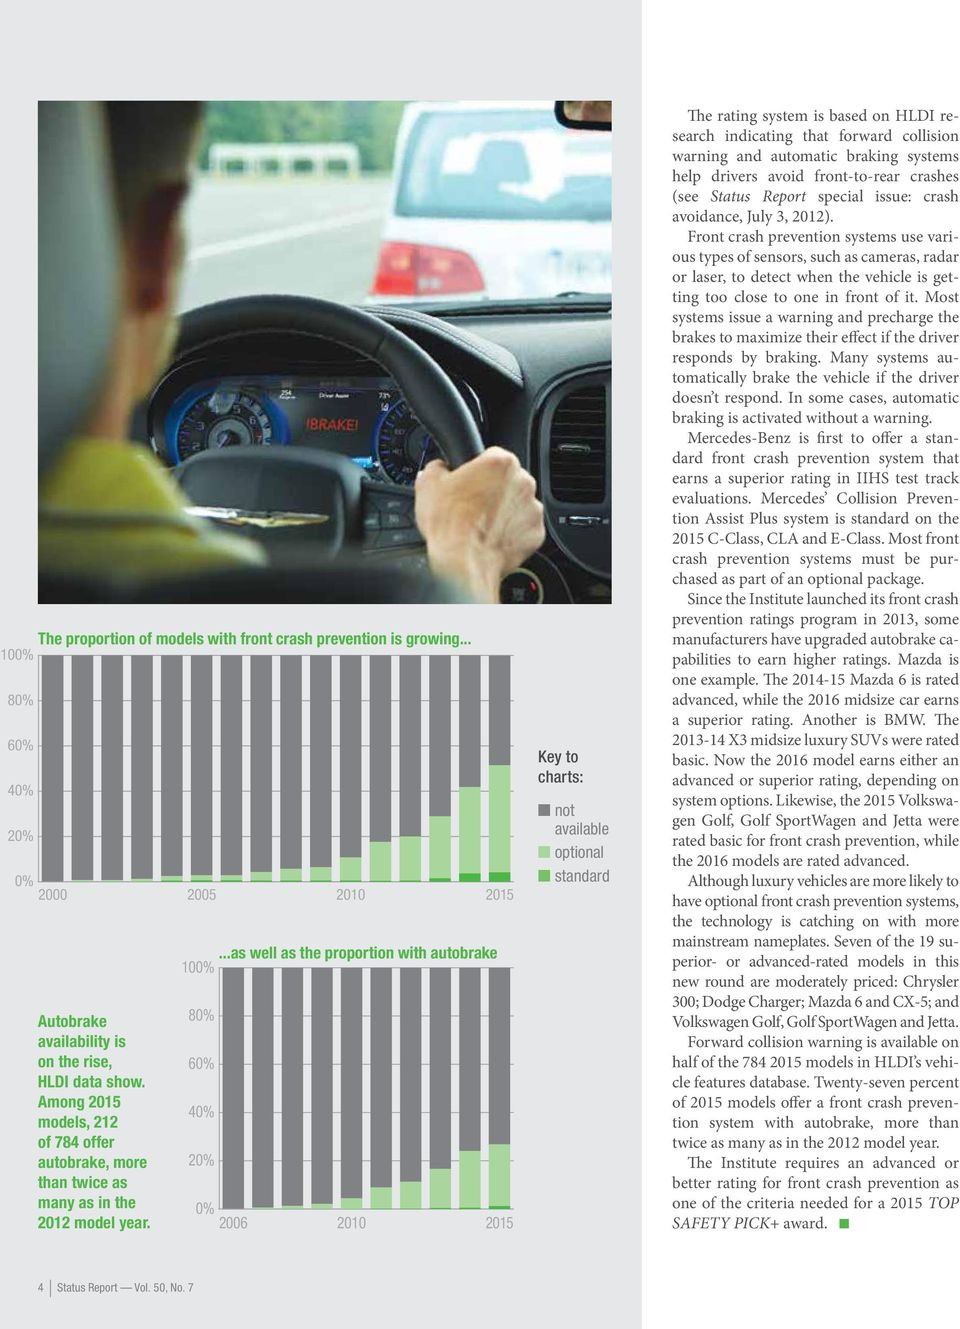 ..as well as the proportion with autobrake 100% 80% 60% 40% 0% 2006 2010 n not available n optional n standard 2015 2010 2015 Key to charts: The rating system is based on HLDI research indicating